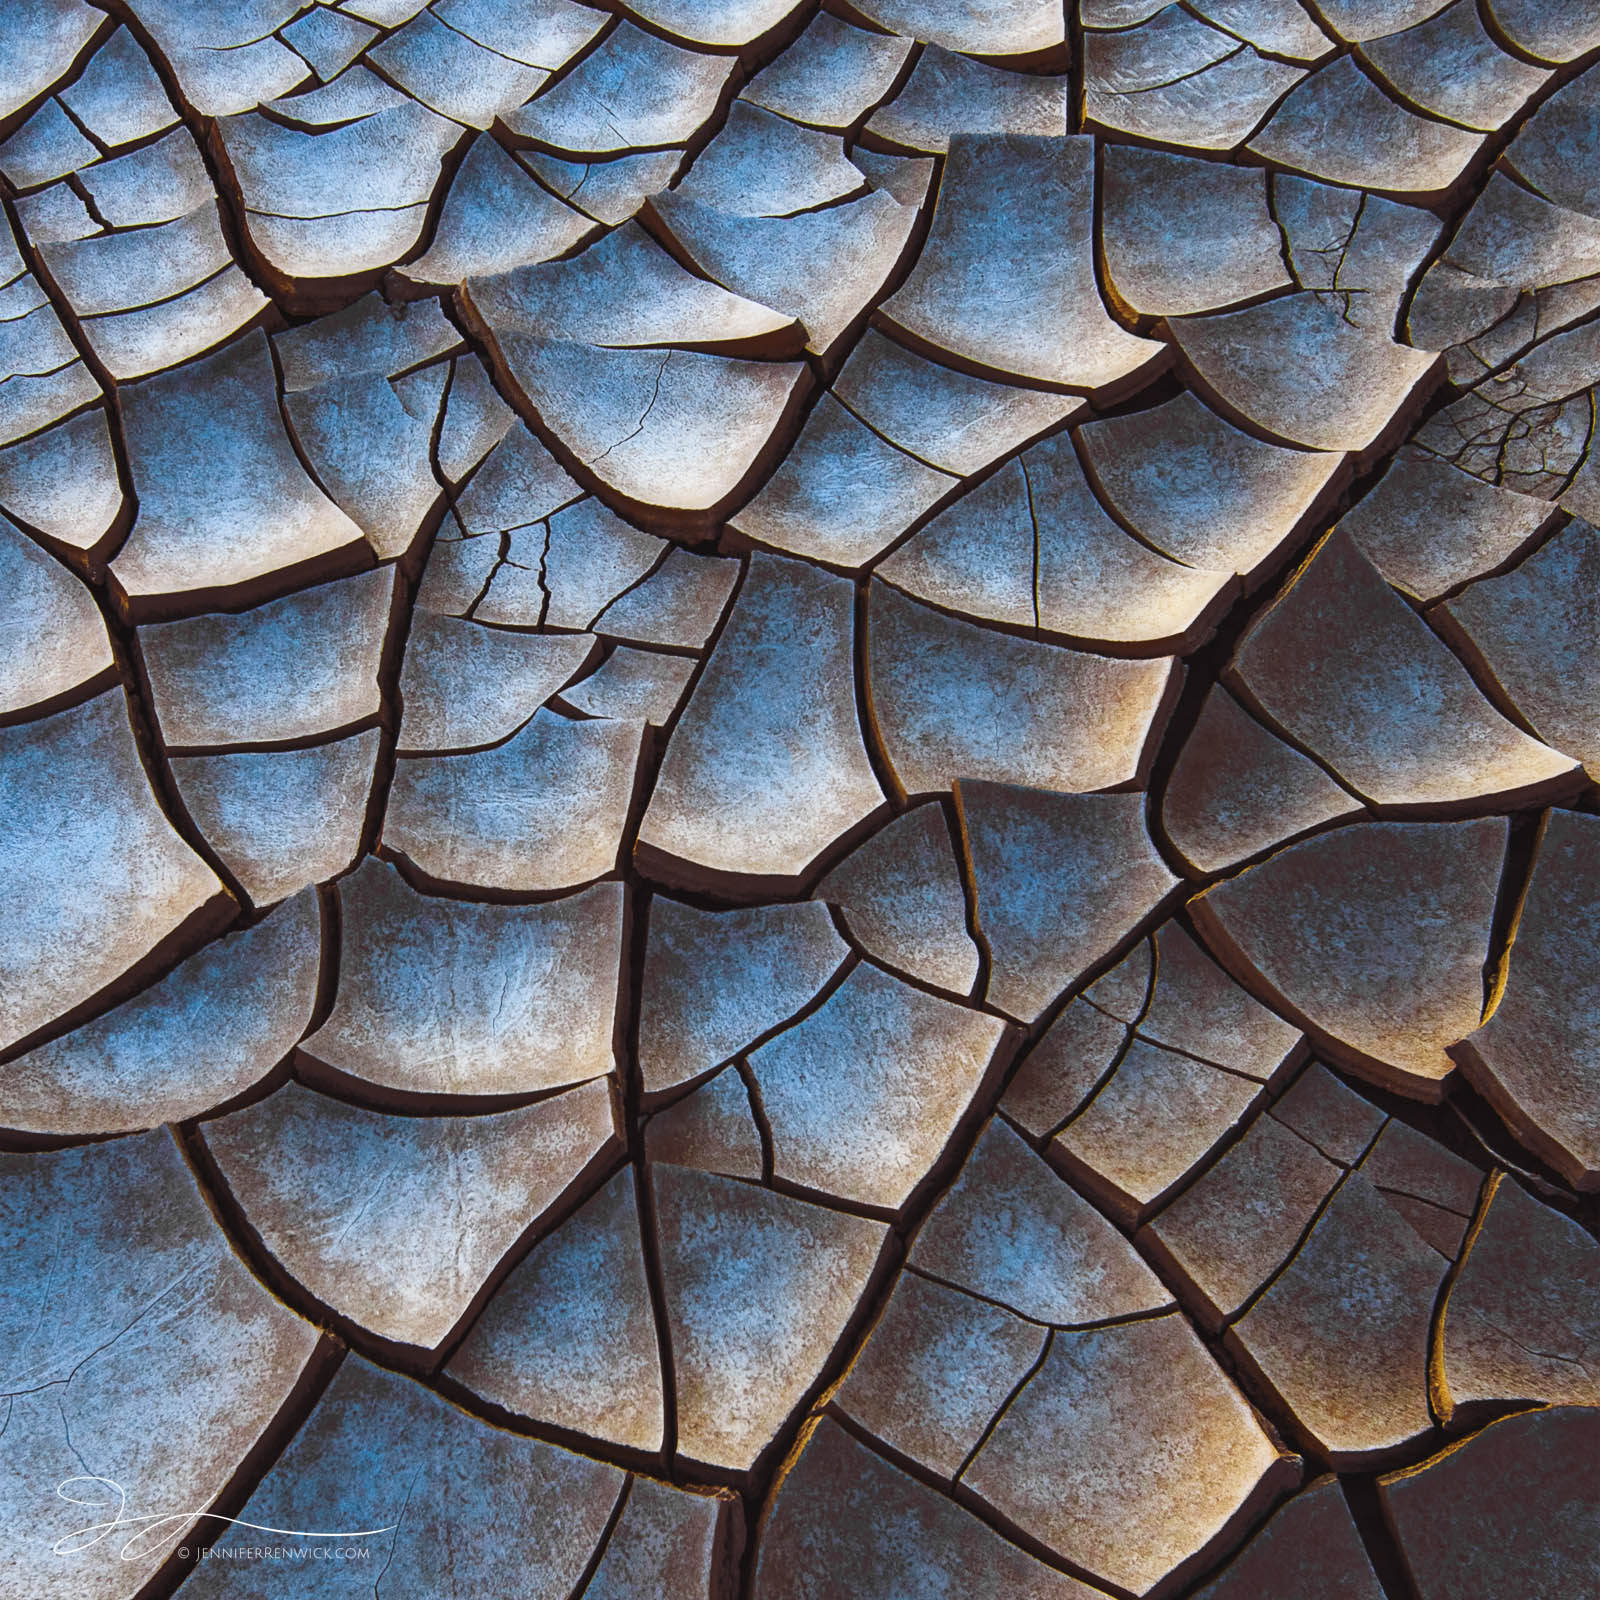 Death Valley National Park, Mojave Desert, abstract photography, California, patterns, desert, mud, textures, playa, mud cracks, blue hour, photo